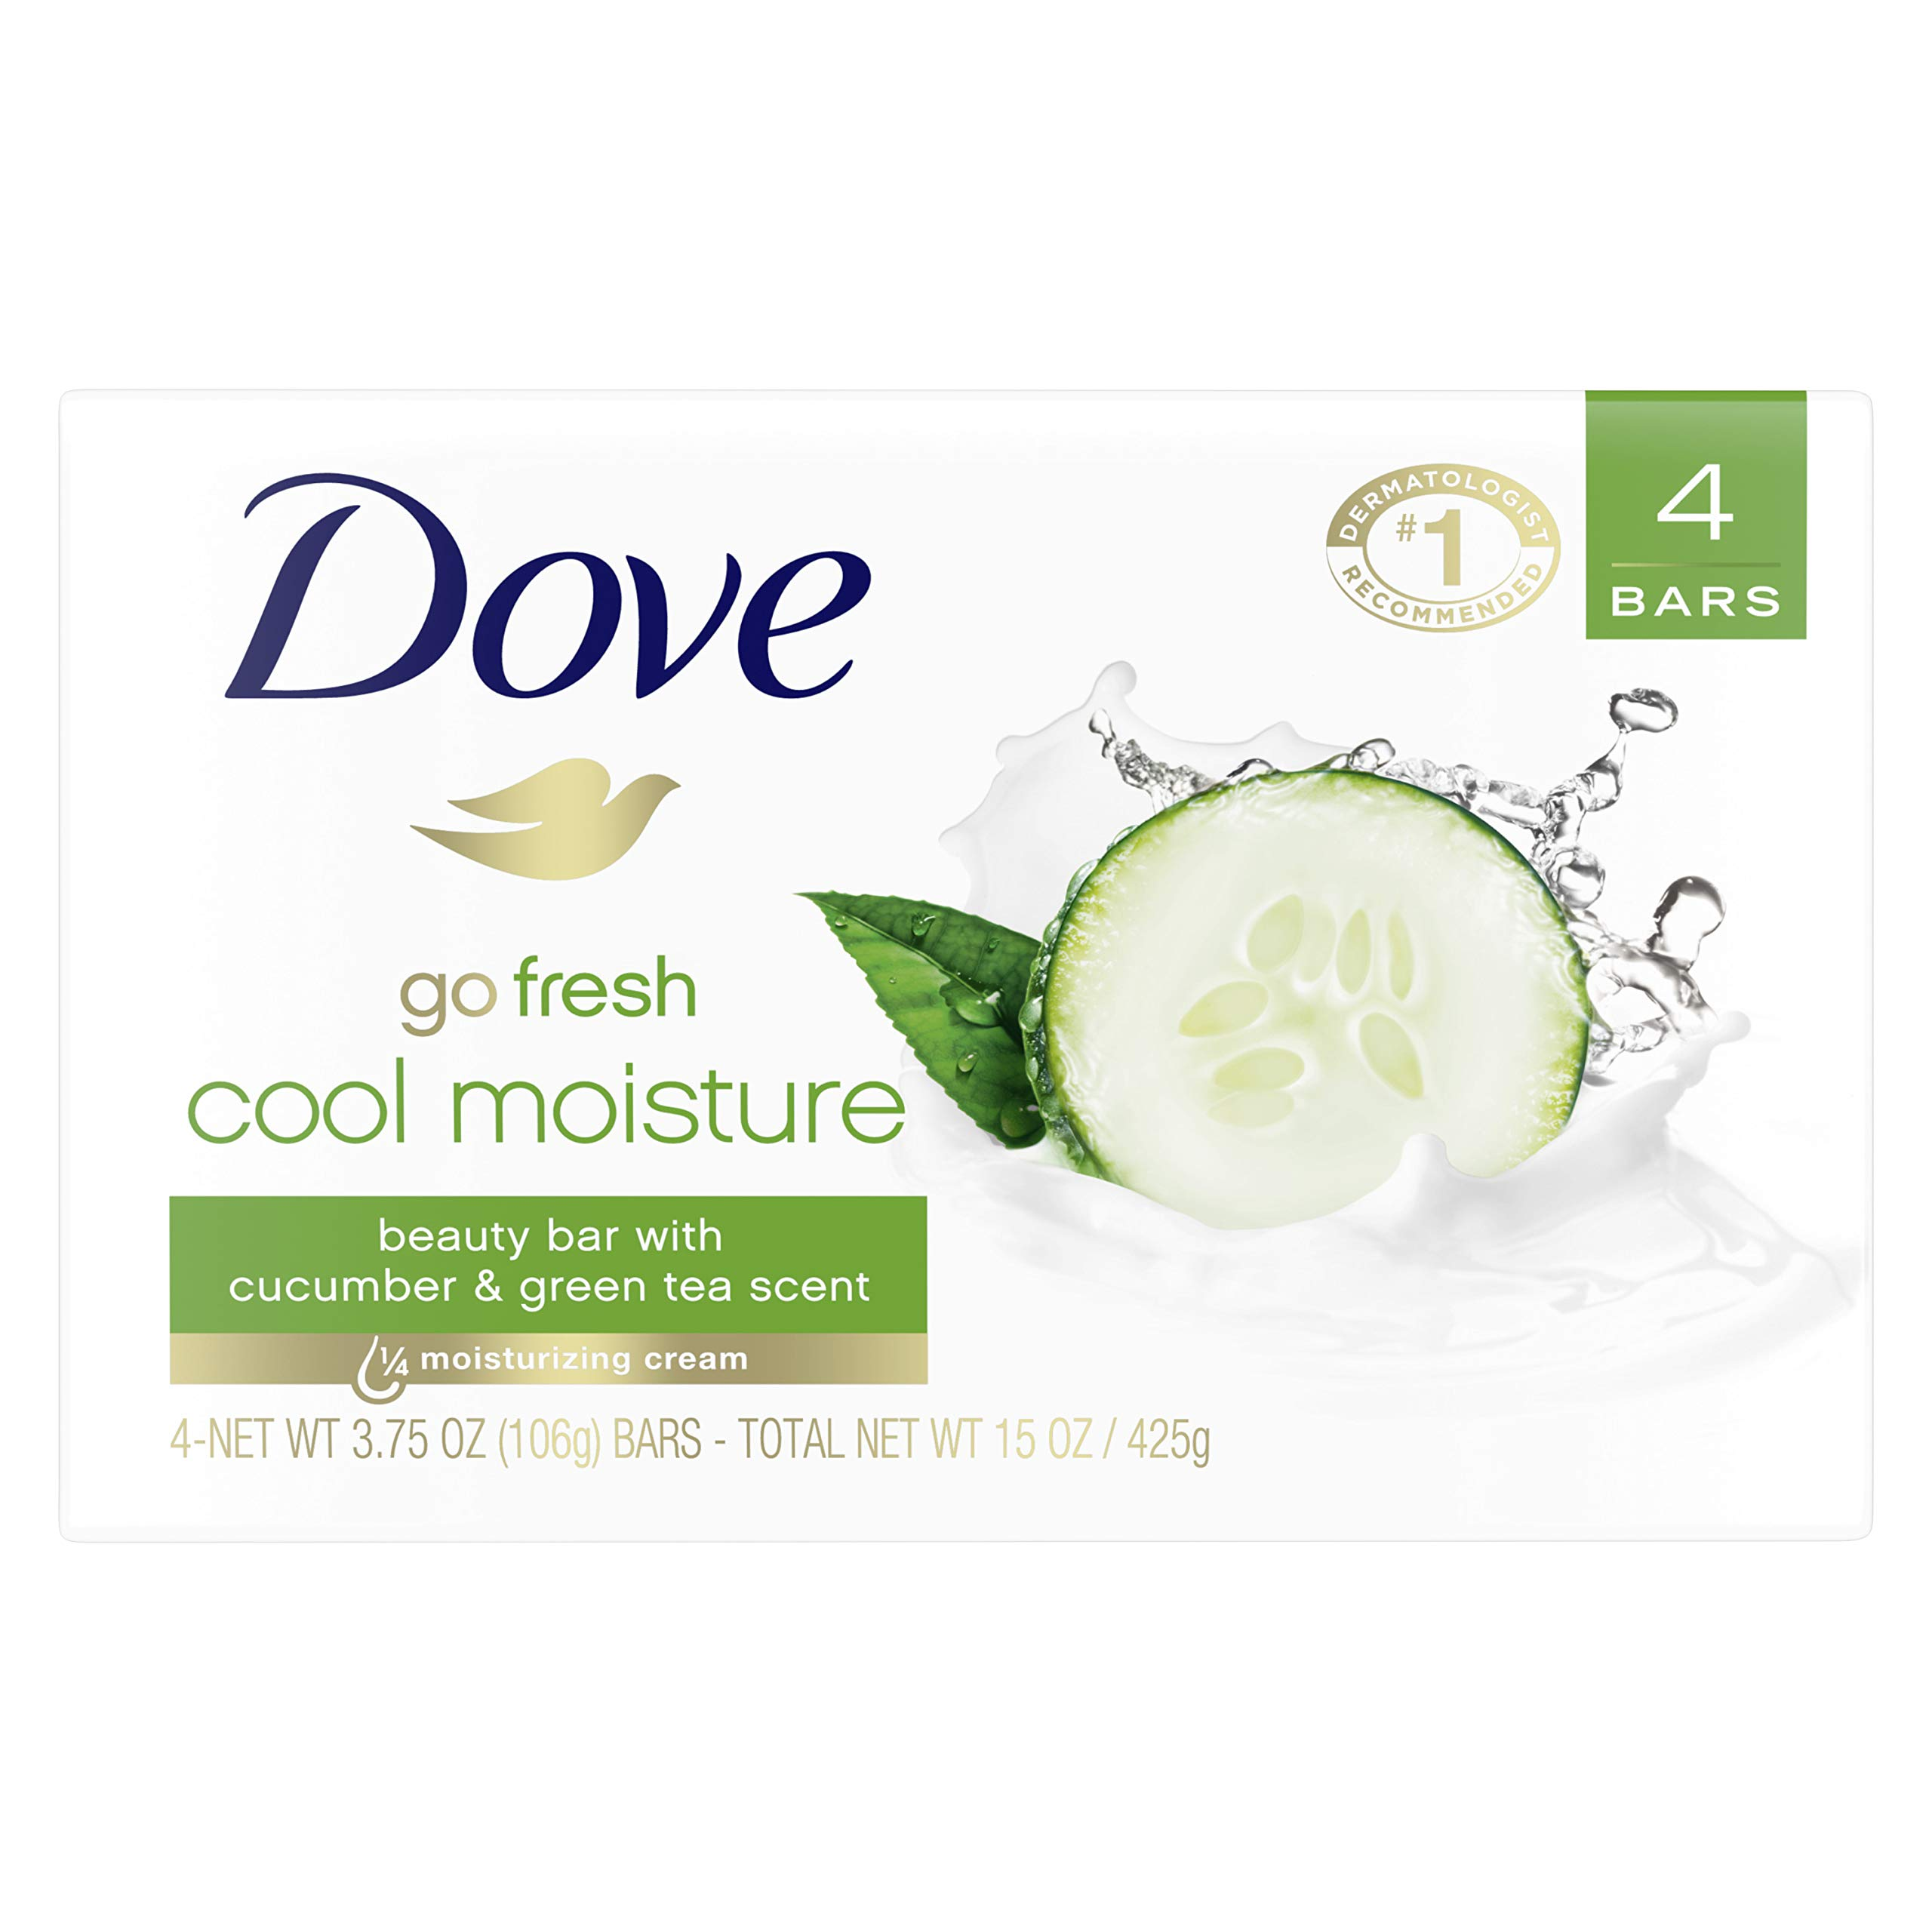 Dove go fresh Beauty Bar Cucumber and Green Tea 3.75 oz 4 Bars